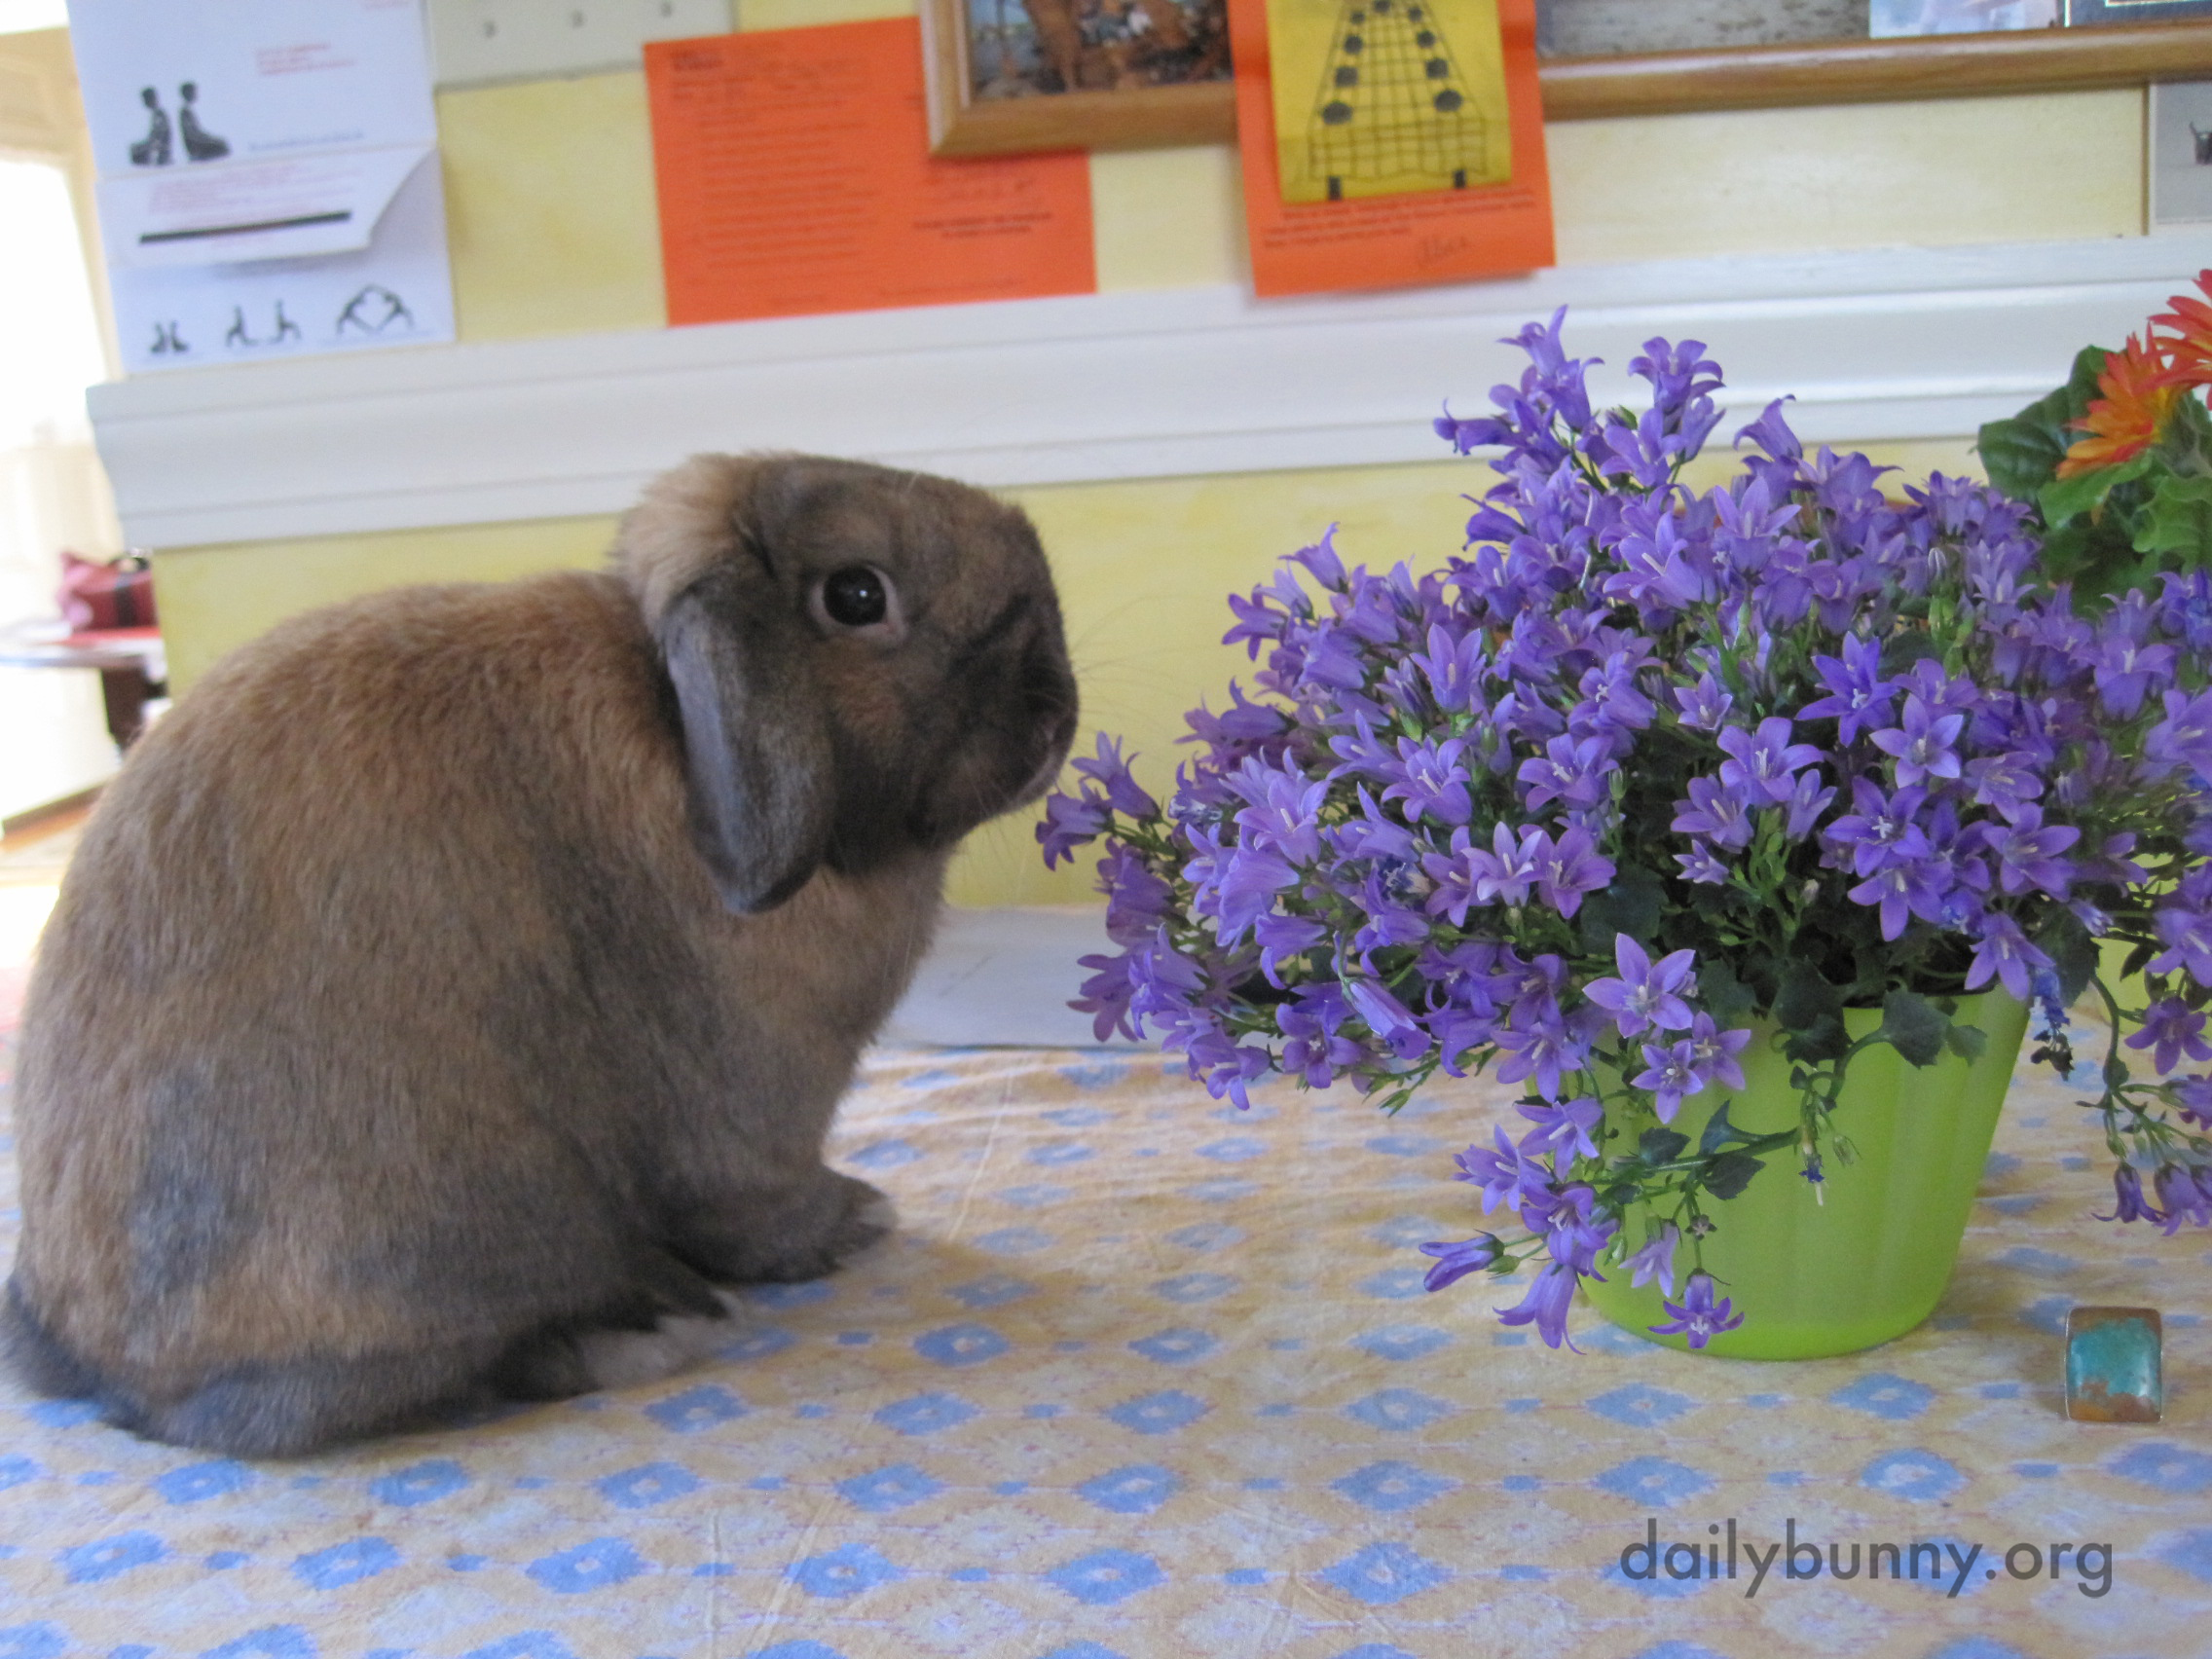 Bunny Tries to Hide Behind the Flowers After Being Caught on the Table 1